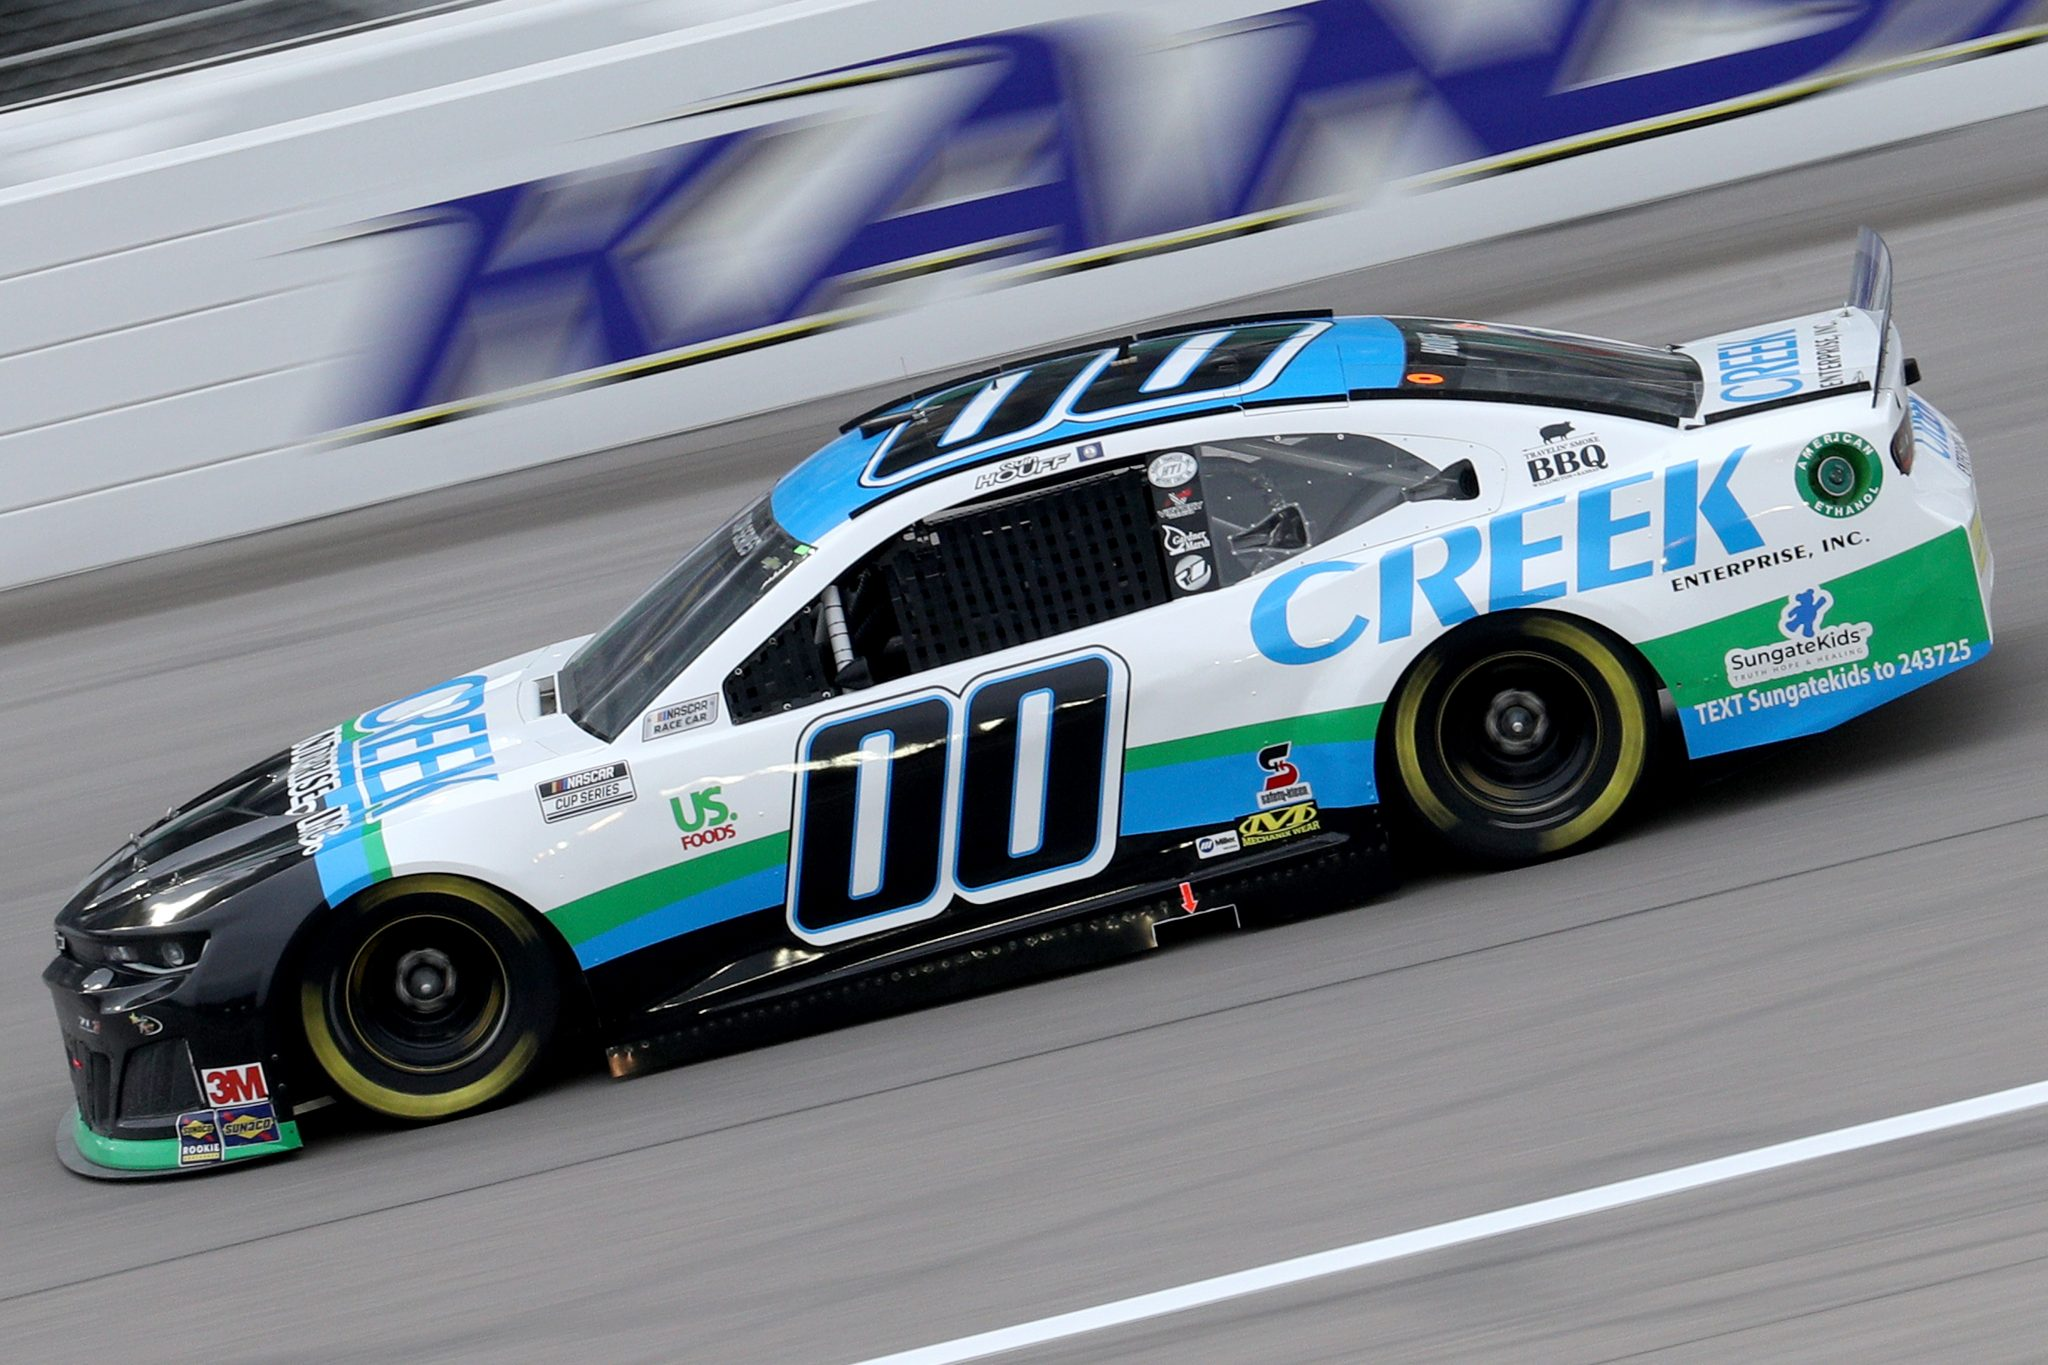 KANSAS CITY, KANSAS - OCTOBER 18: Quin Houff, driver of the #00 CREEK Enterprises Inc. Chevrolet, drives during the NASCAR Cup Series Hollywood Casino 400 at Kansas Speedway on October 18, 2020 in Kansas City, Kansas. (Photo by Chris Graythen/Getty Images) | Getty Images